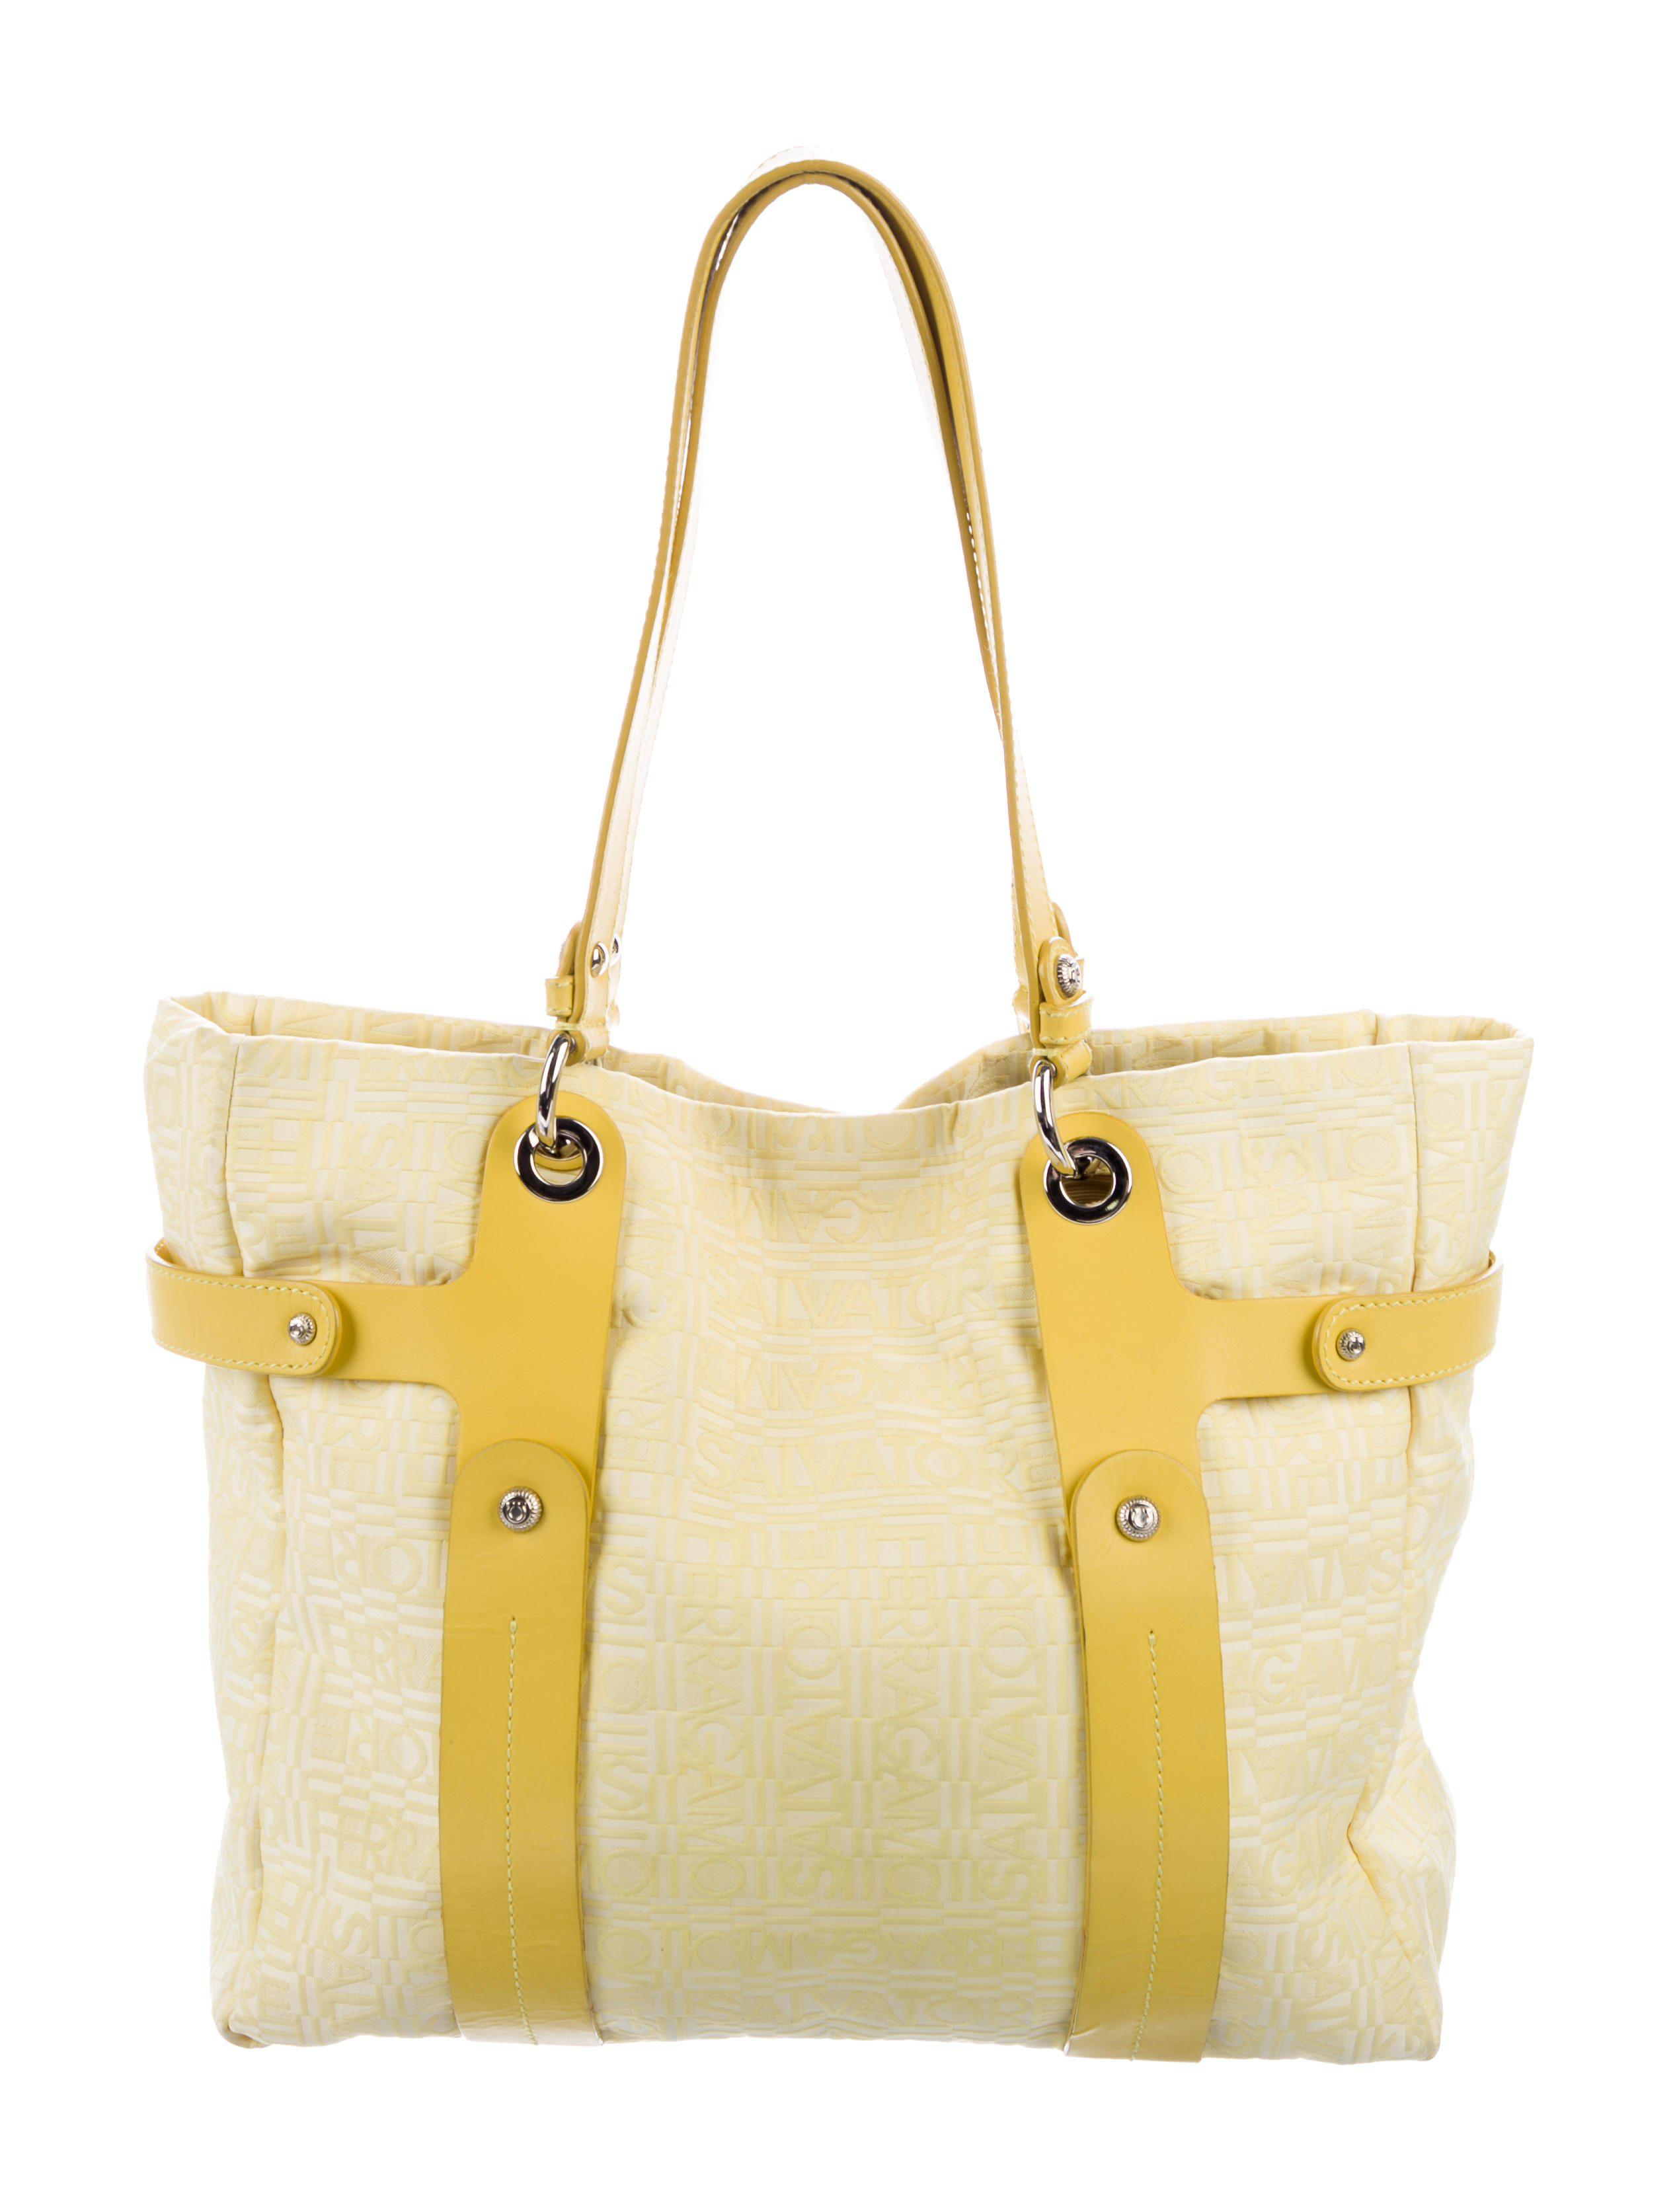 e1379dac4b8 Lyst - Ferragamo Leather-trimmed Monogram Tote Yellow in Metallic